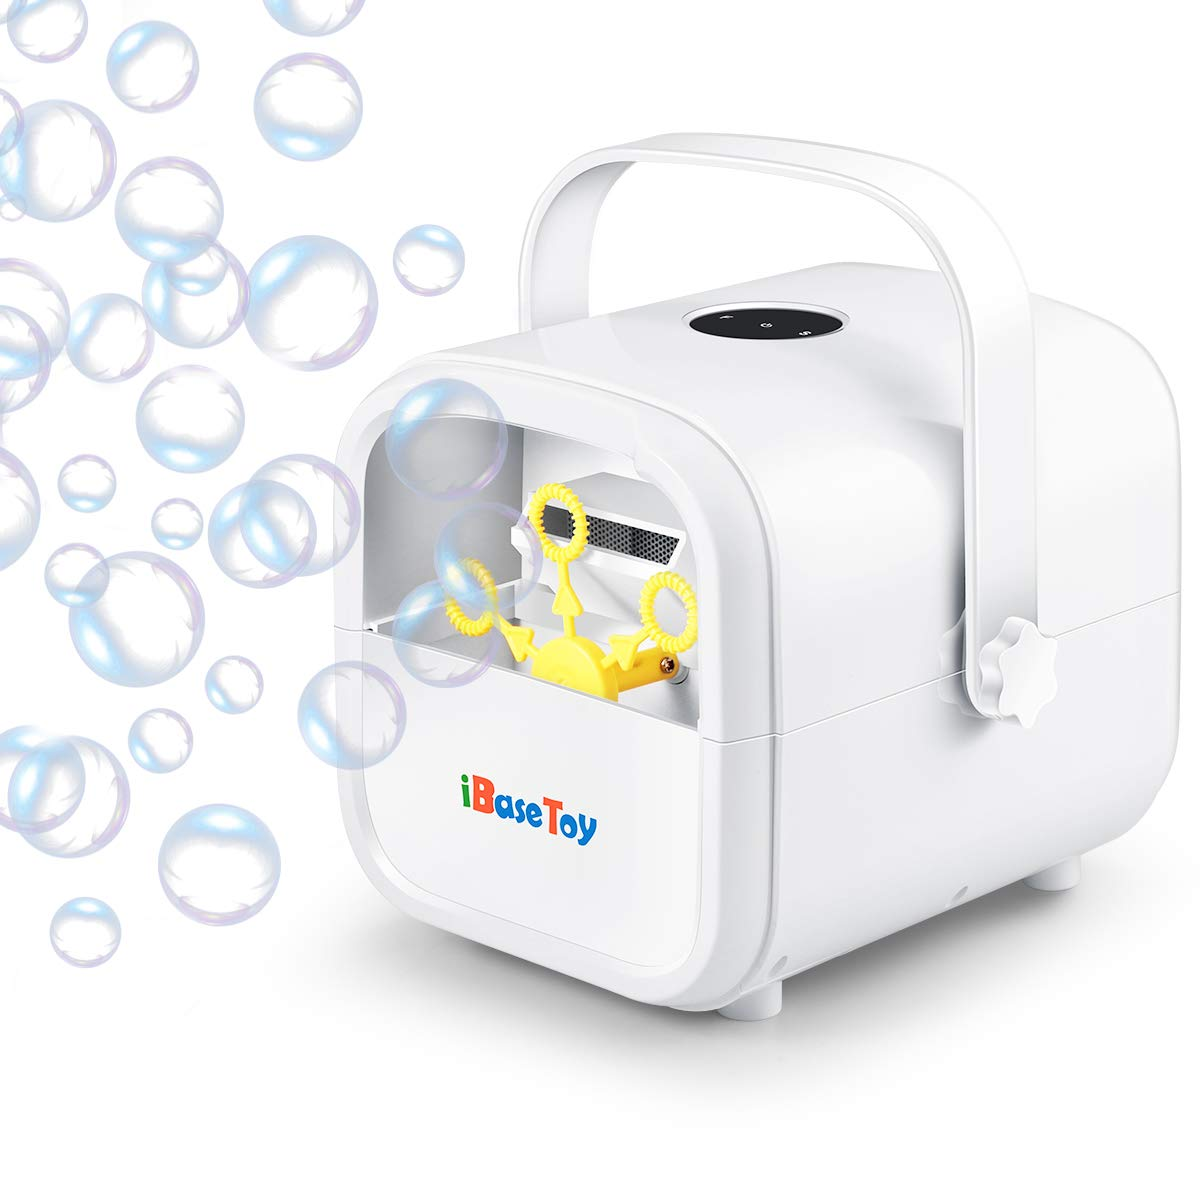 iBaseToy Automatic Bubble Machine for Kids, Portable Professional Bubble Maker for Parties with 2 Speed Levels, Bubble Blower Operated by Plug-in or Batteries